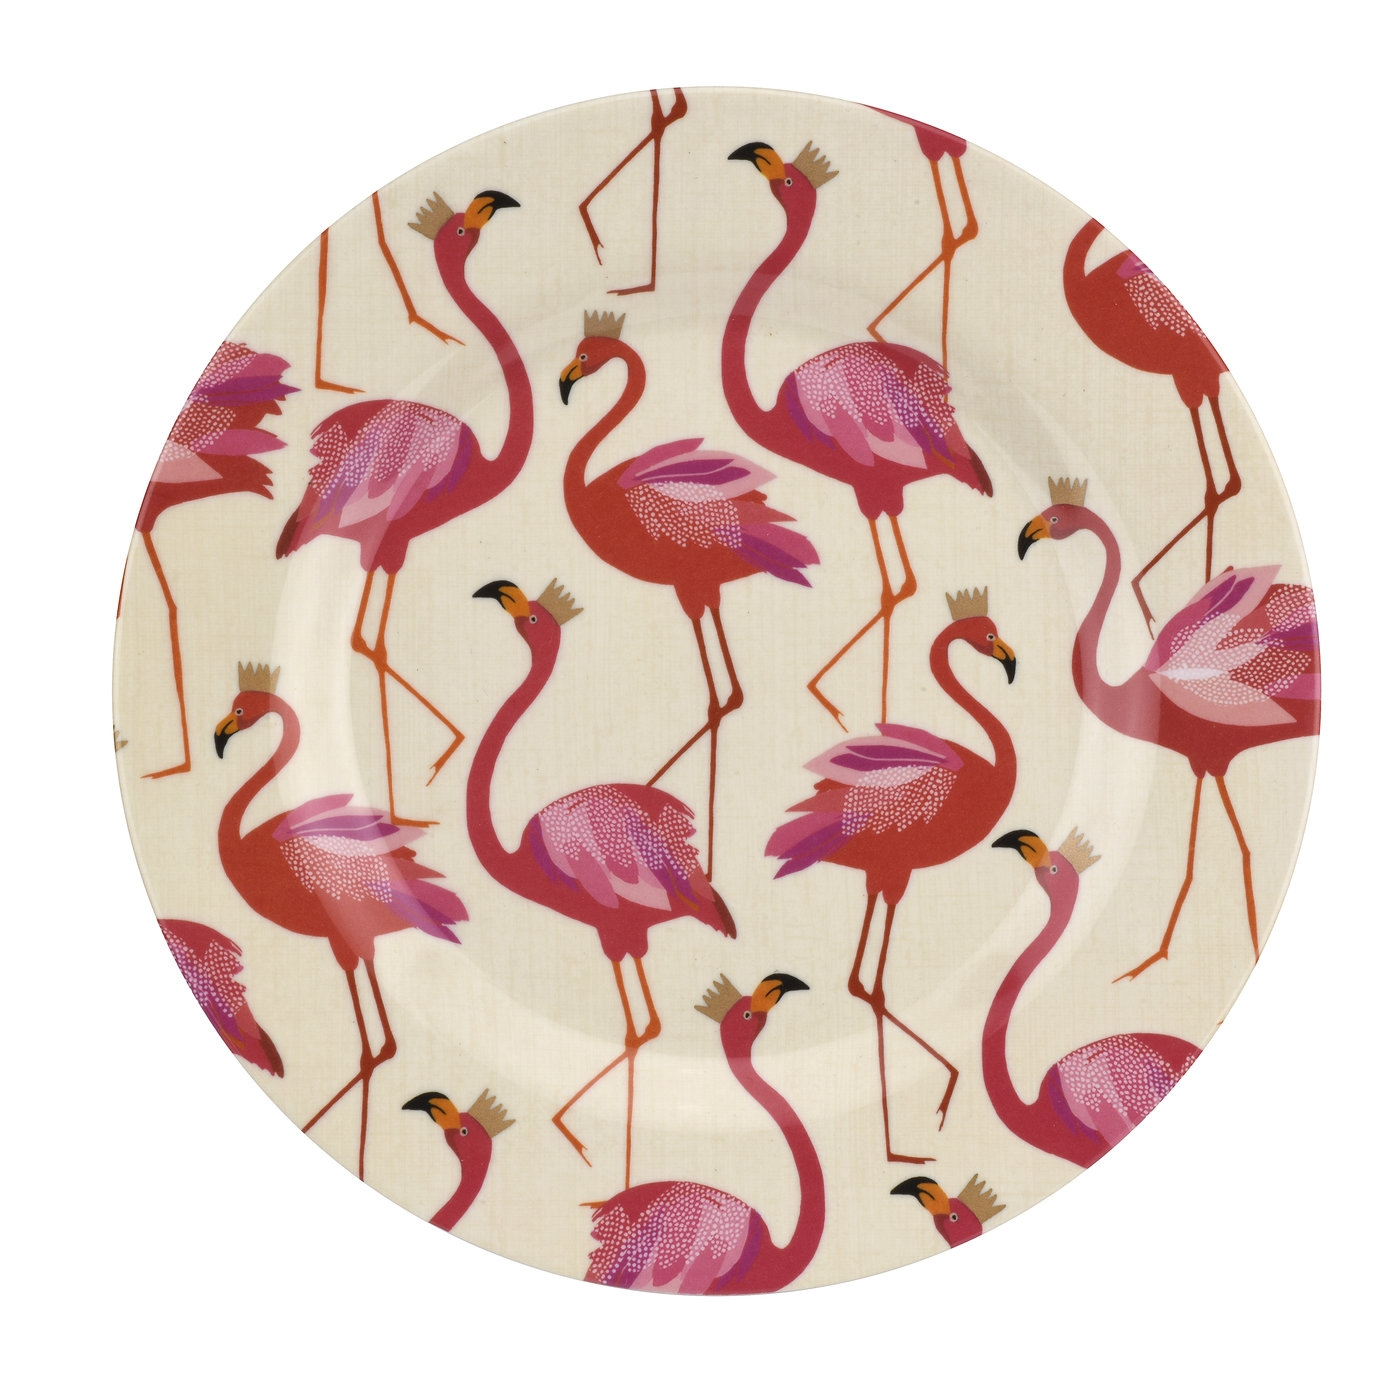 Sara Miller London for Portmeirion Flamingo 8 Inch Melamine Salad Plates Set of 4 image number 0